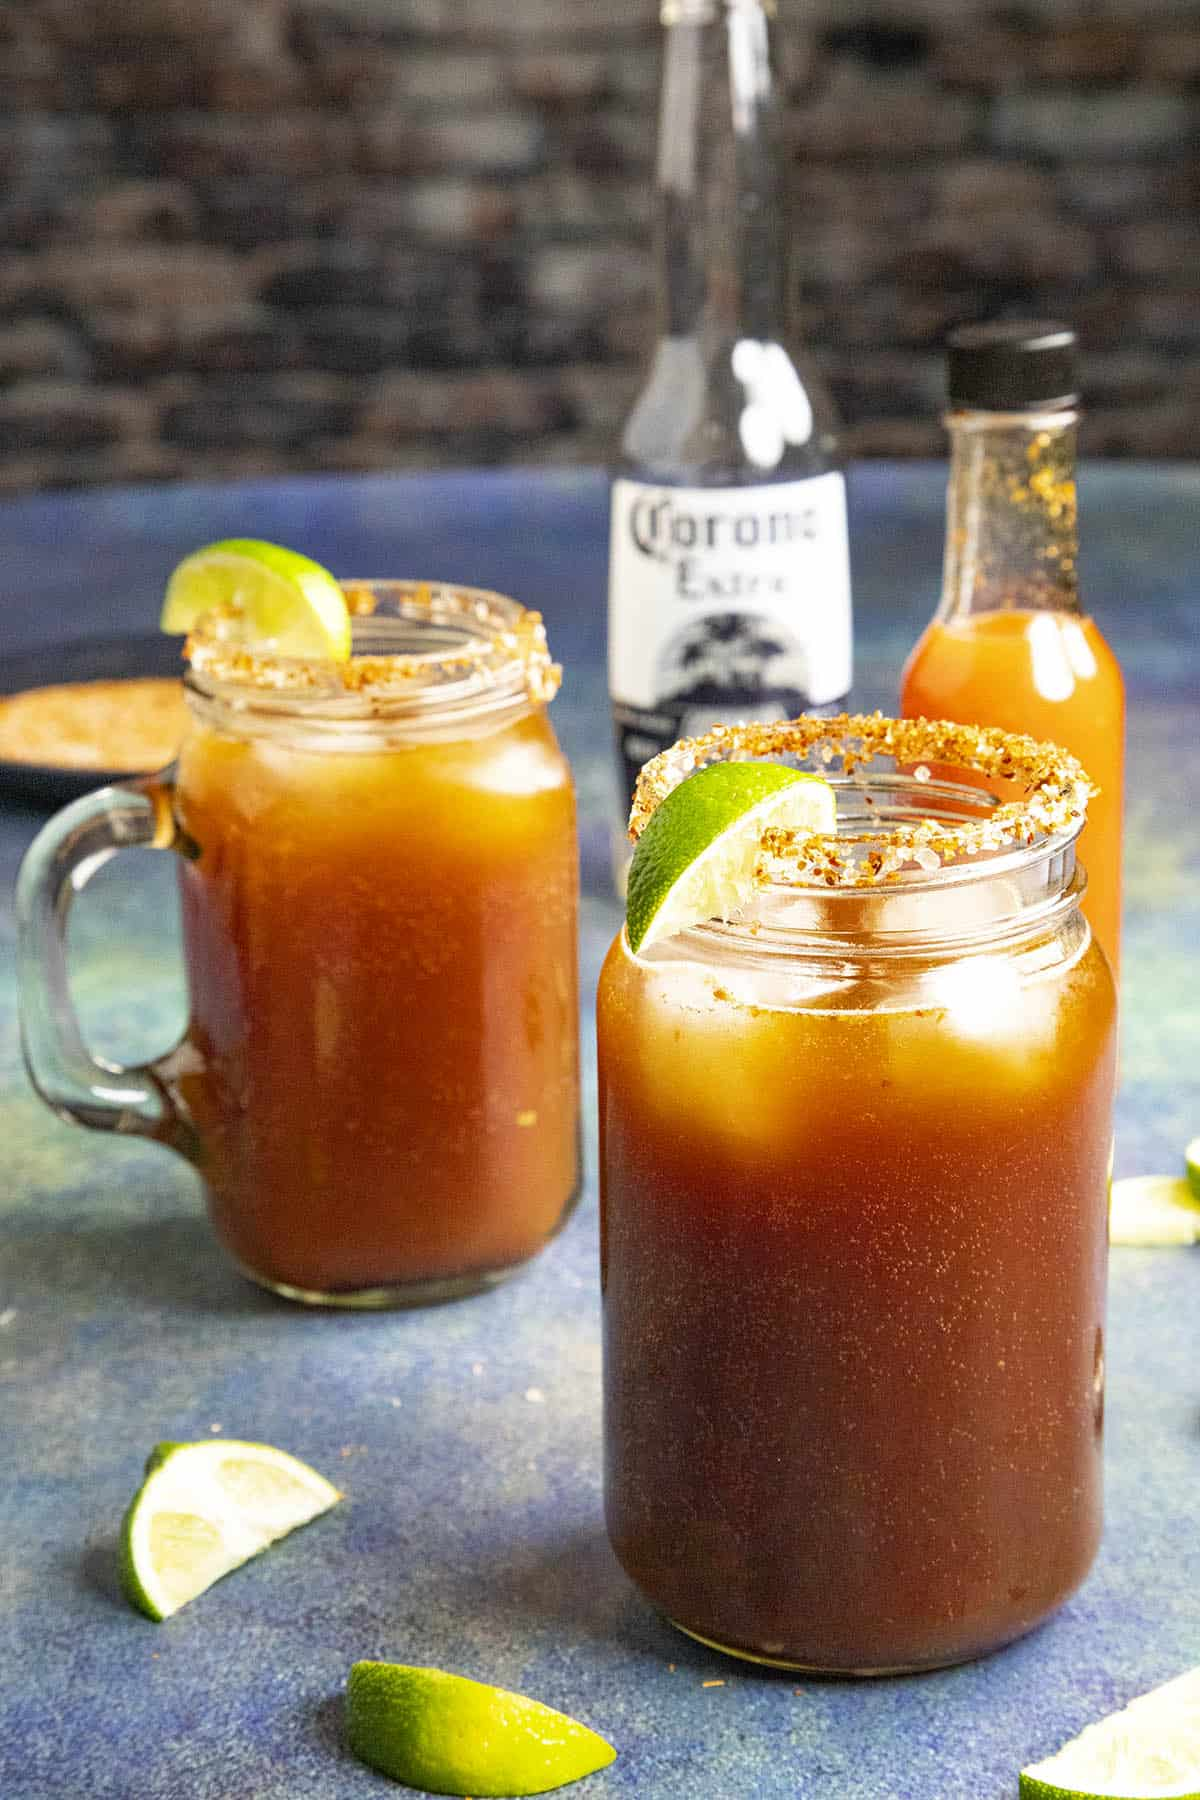 Two micheladas, Mexican beer and Clamato juice cocktails